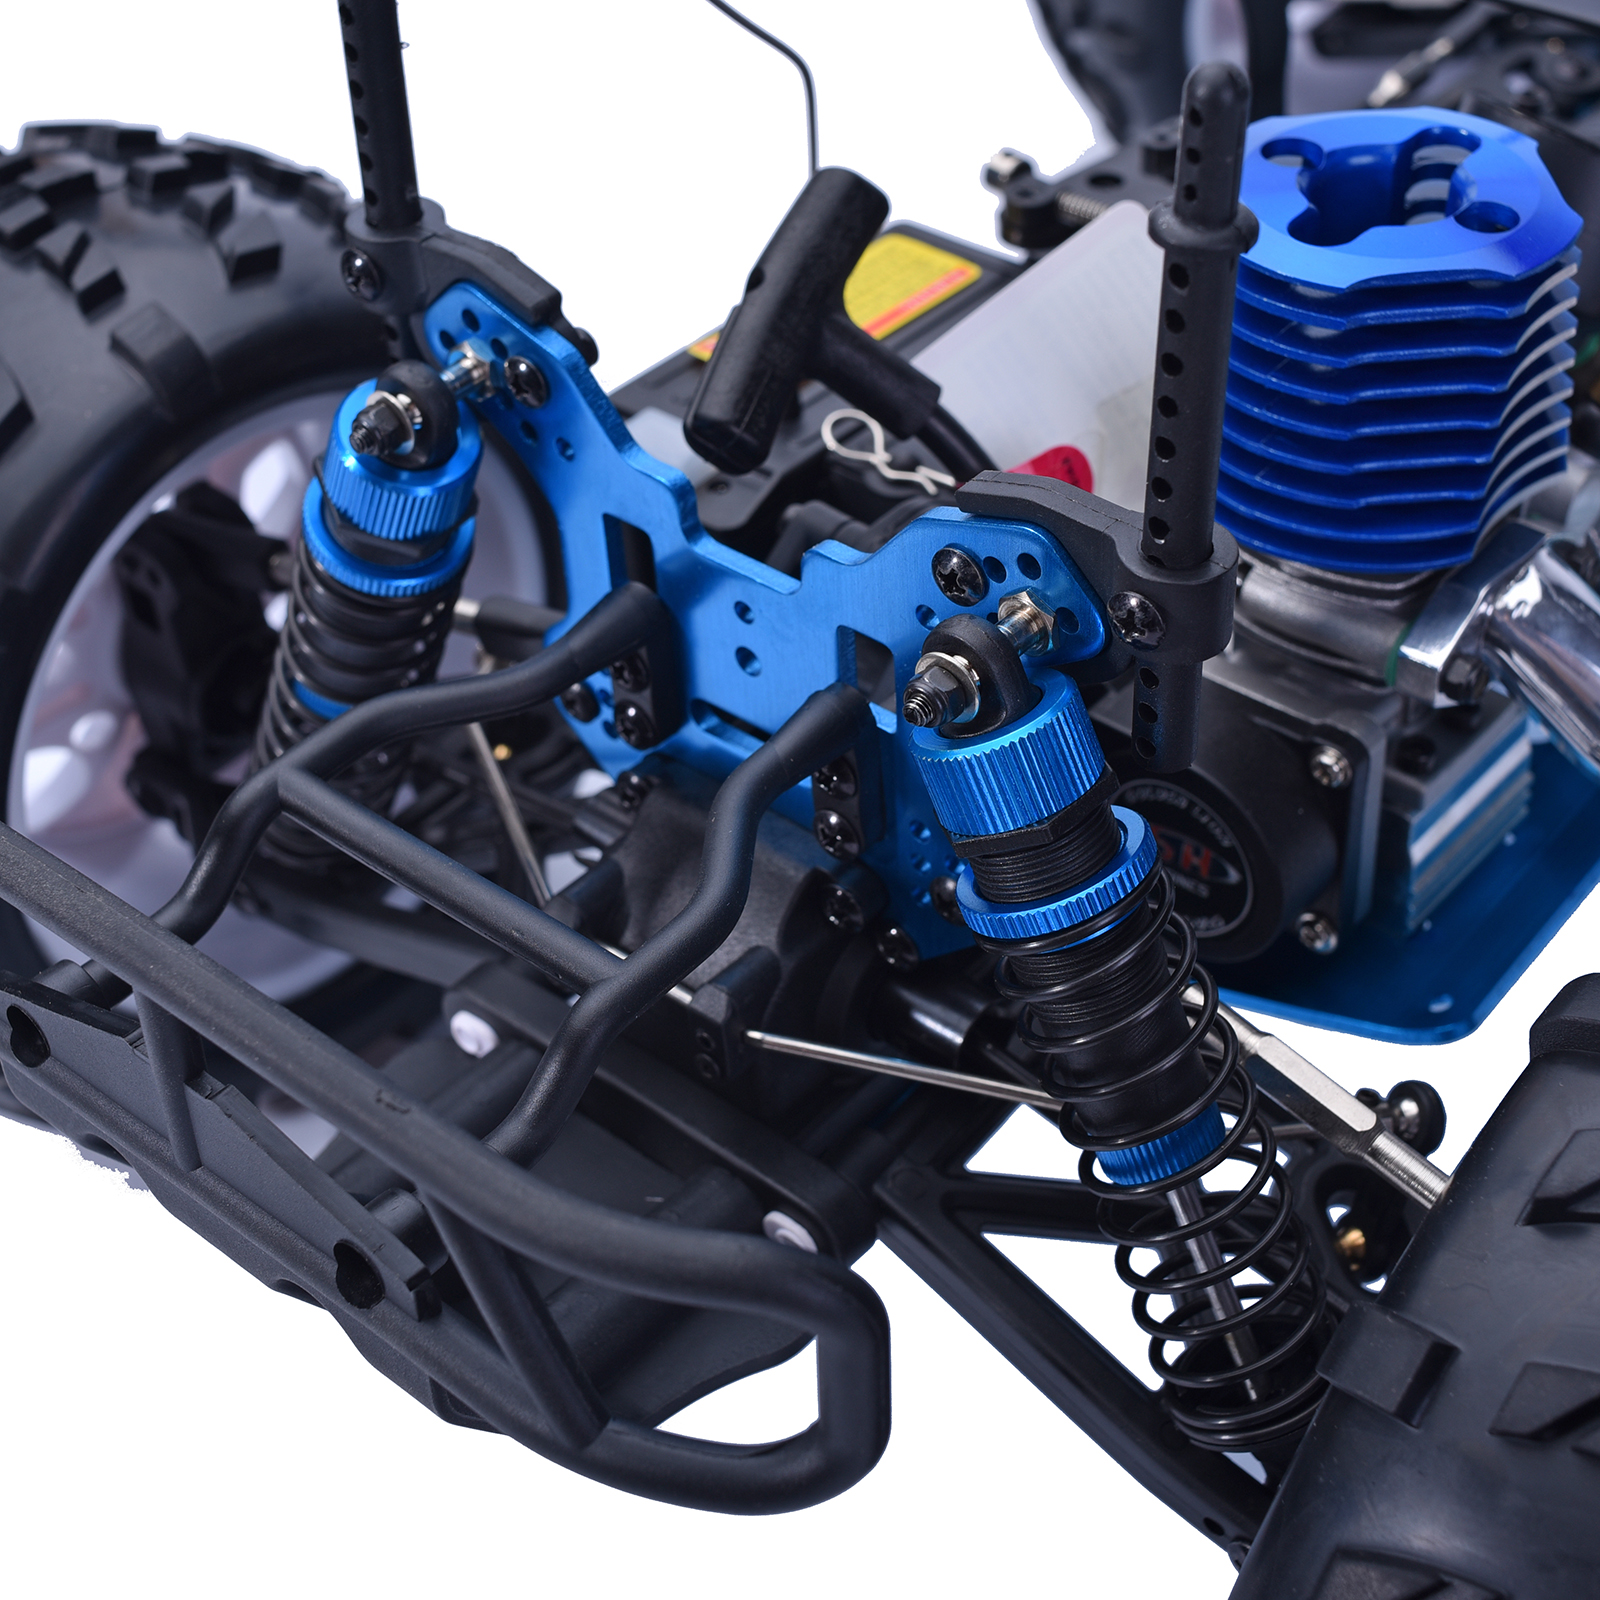 Hsp Rc Truck Nitro Gas Power Off Road Monster Truck 94188: HSP 1/8 Scale RTR 2.4GHz Nitro 2 Speed 4x4 RC Car Off Road